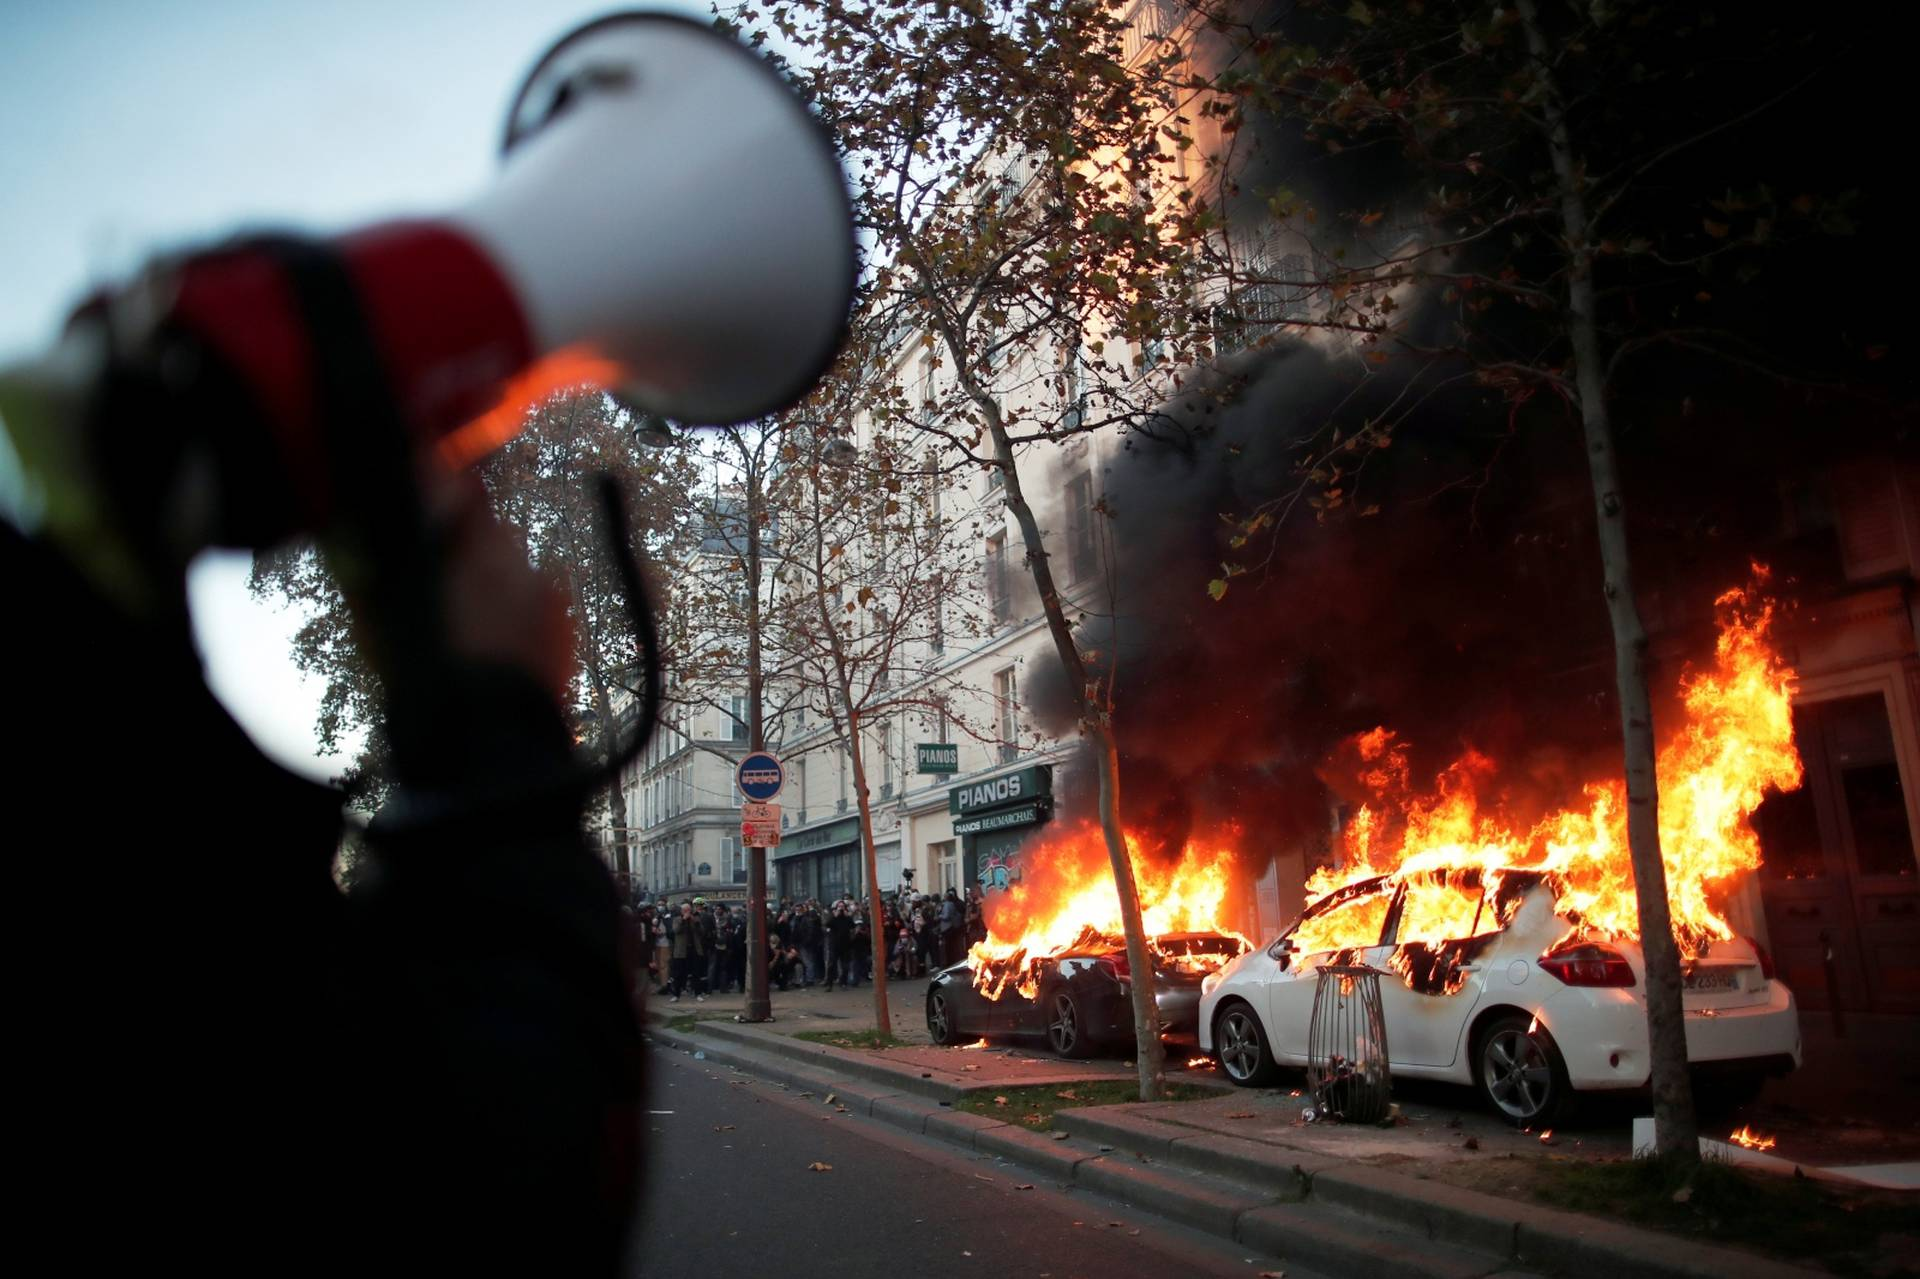 Protests over proposed curbs on identifying police, in Paris